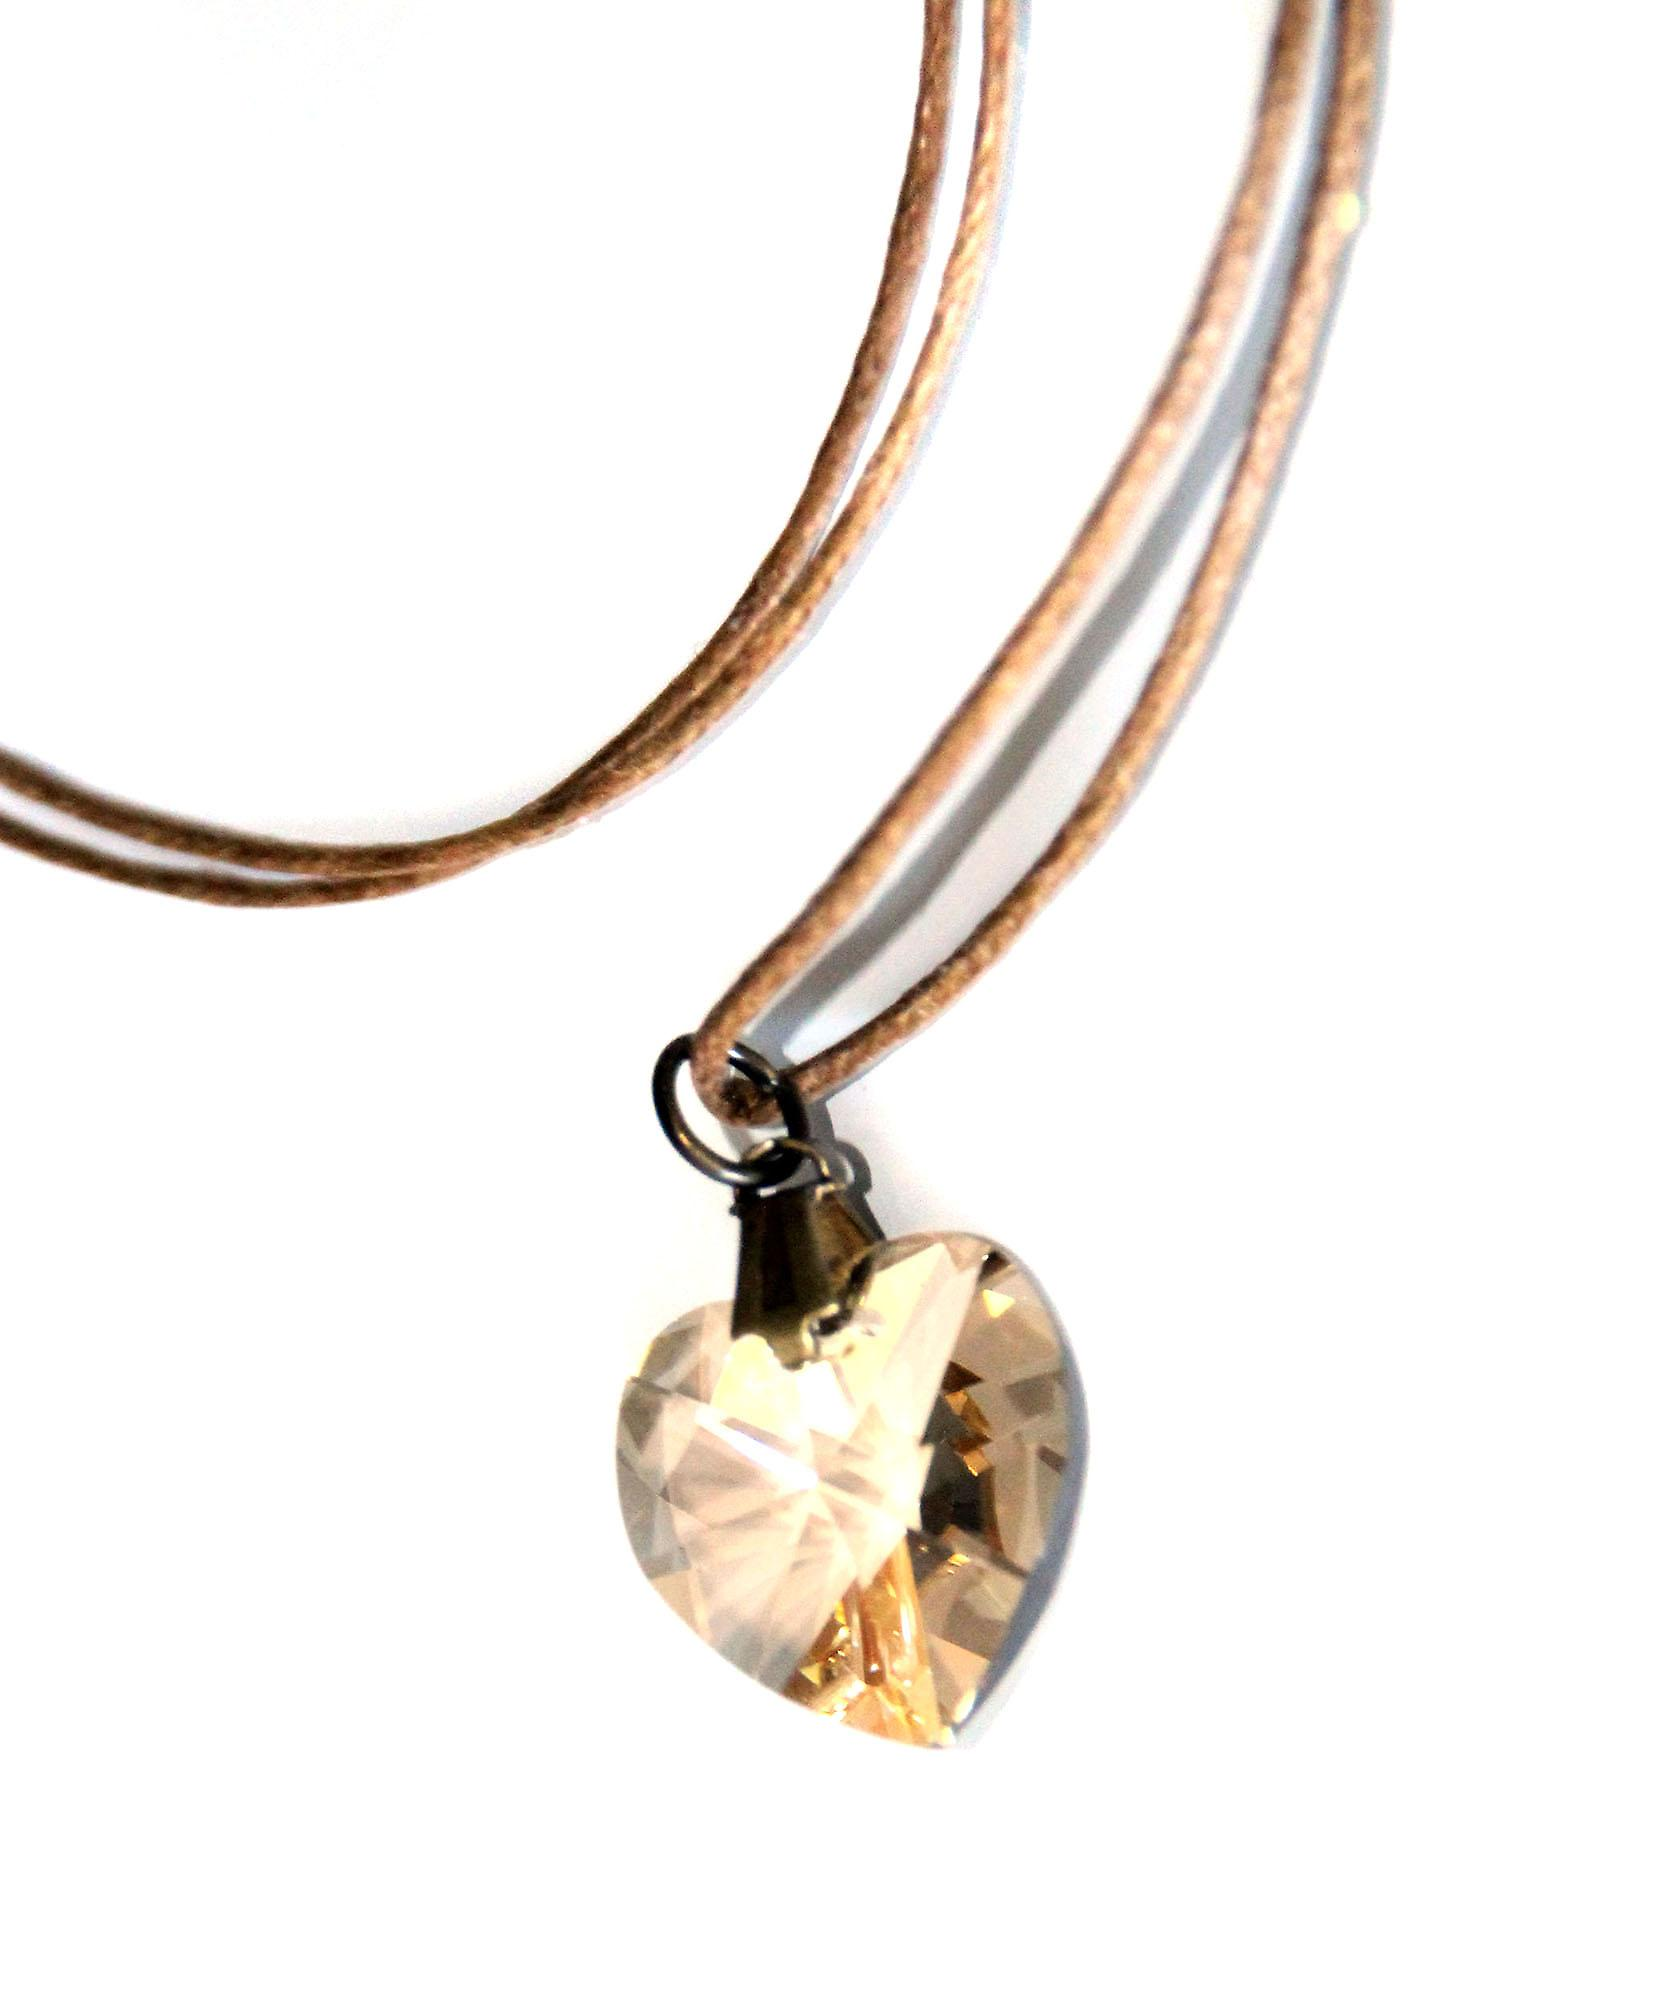 Waooh - Jewelry - Swarovski / Pendant heart with beige wax cord - Café